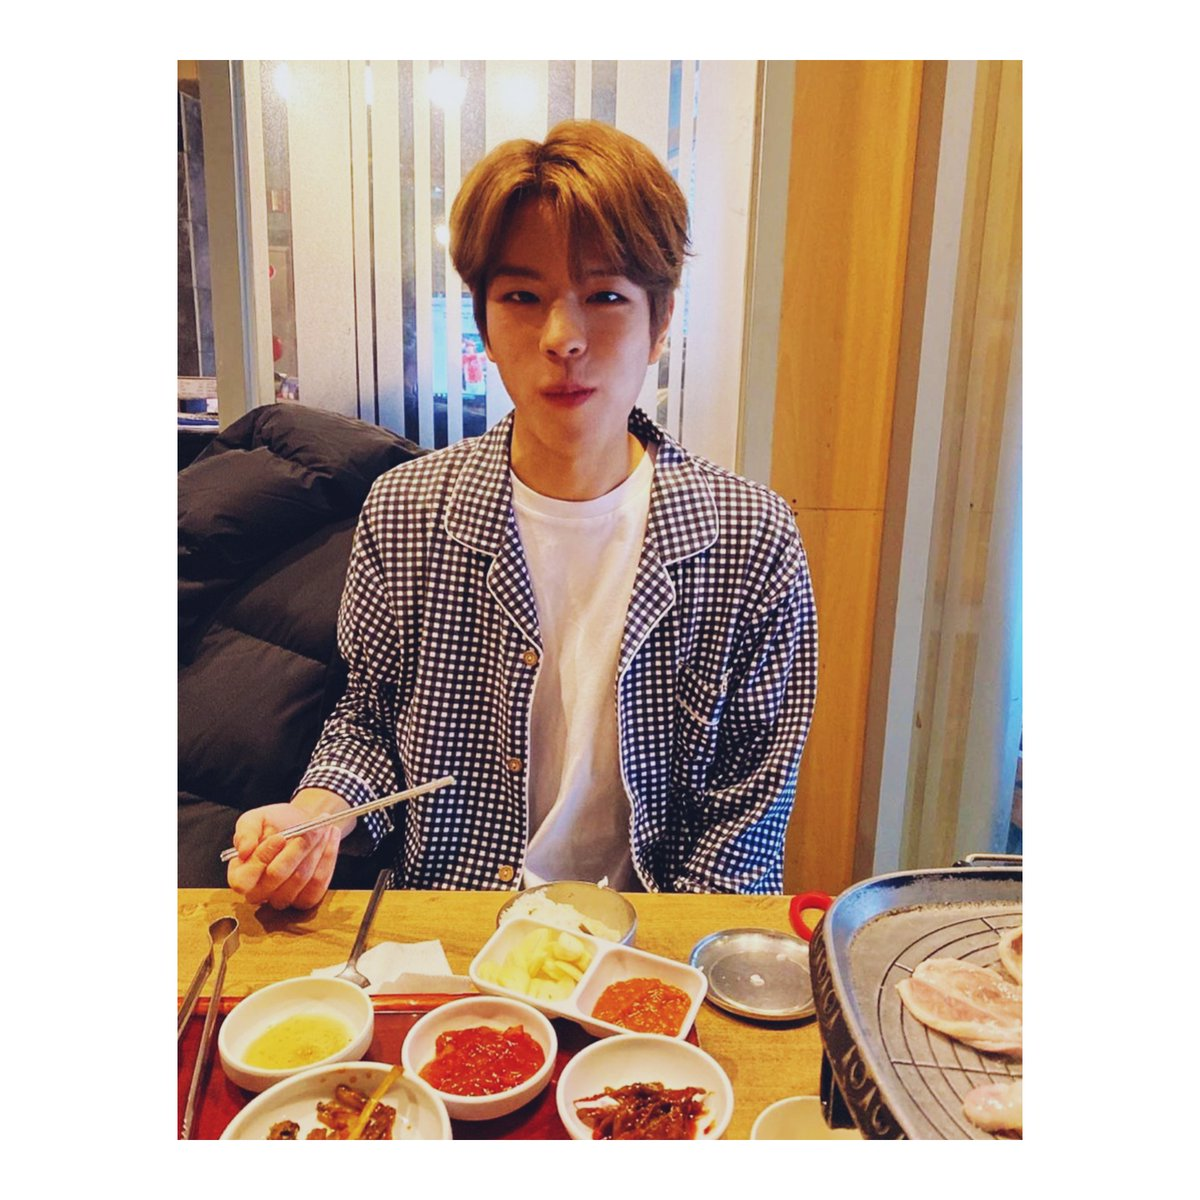 Dinner with baby seungmin   #StrayKids #SSD #StaySelcaDay #스트레이키즈 @Stray_Kids<br>http://pic.twitter.com/THLDixFUuL